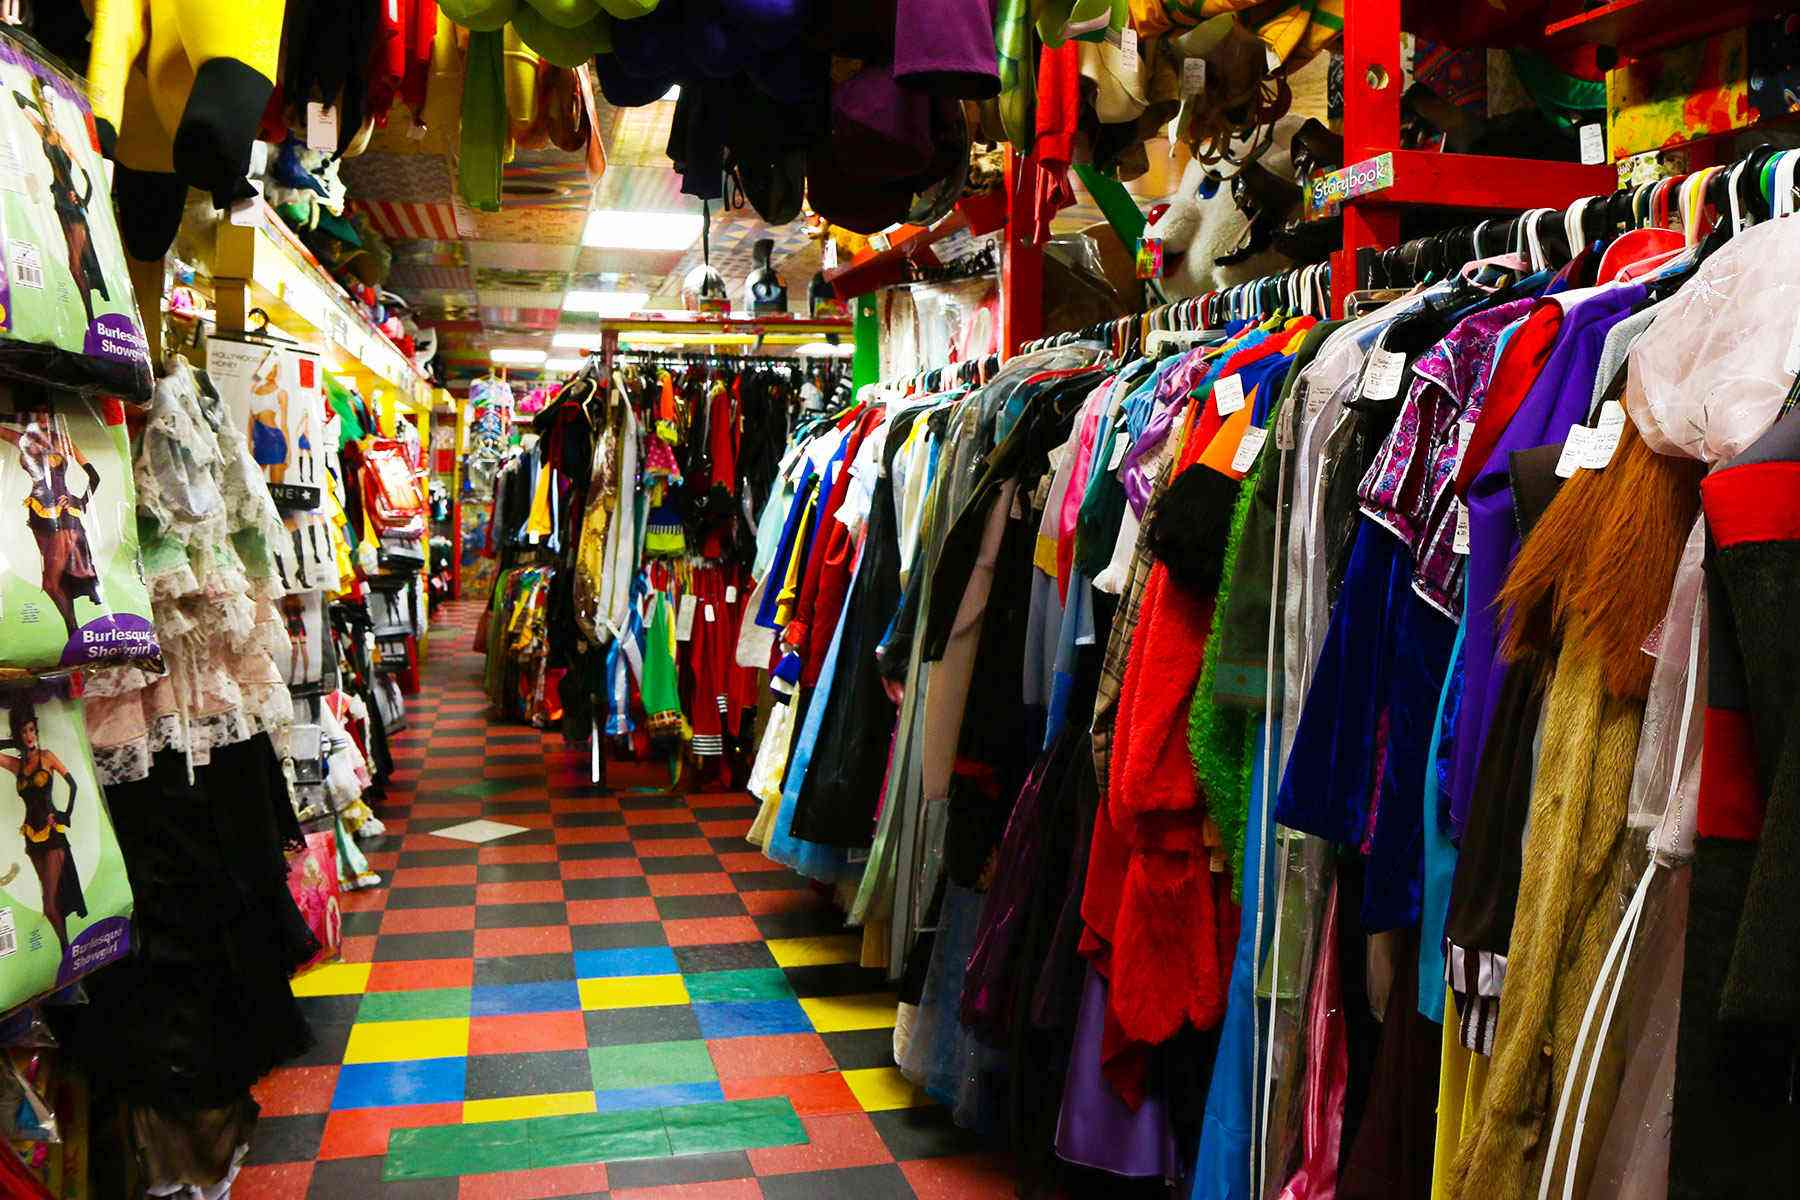 Halloween Costume Stores.Costume Store Cheaper Than Retail Price Buy Clothing Accessories And Lifestyle Products For Women Men